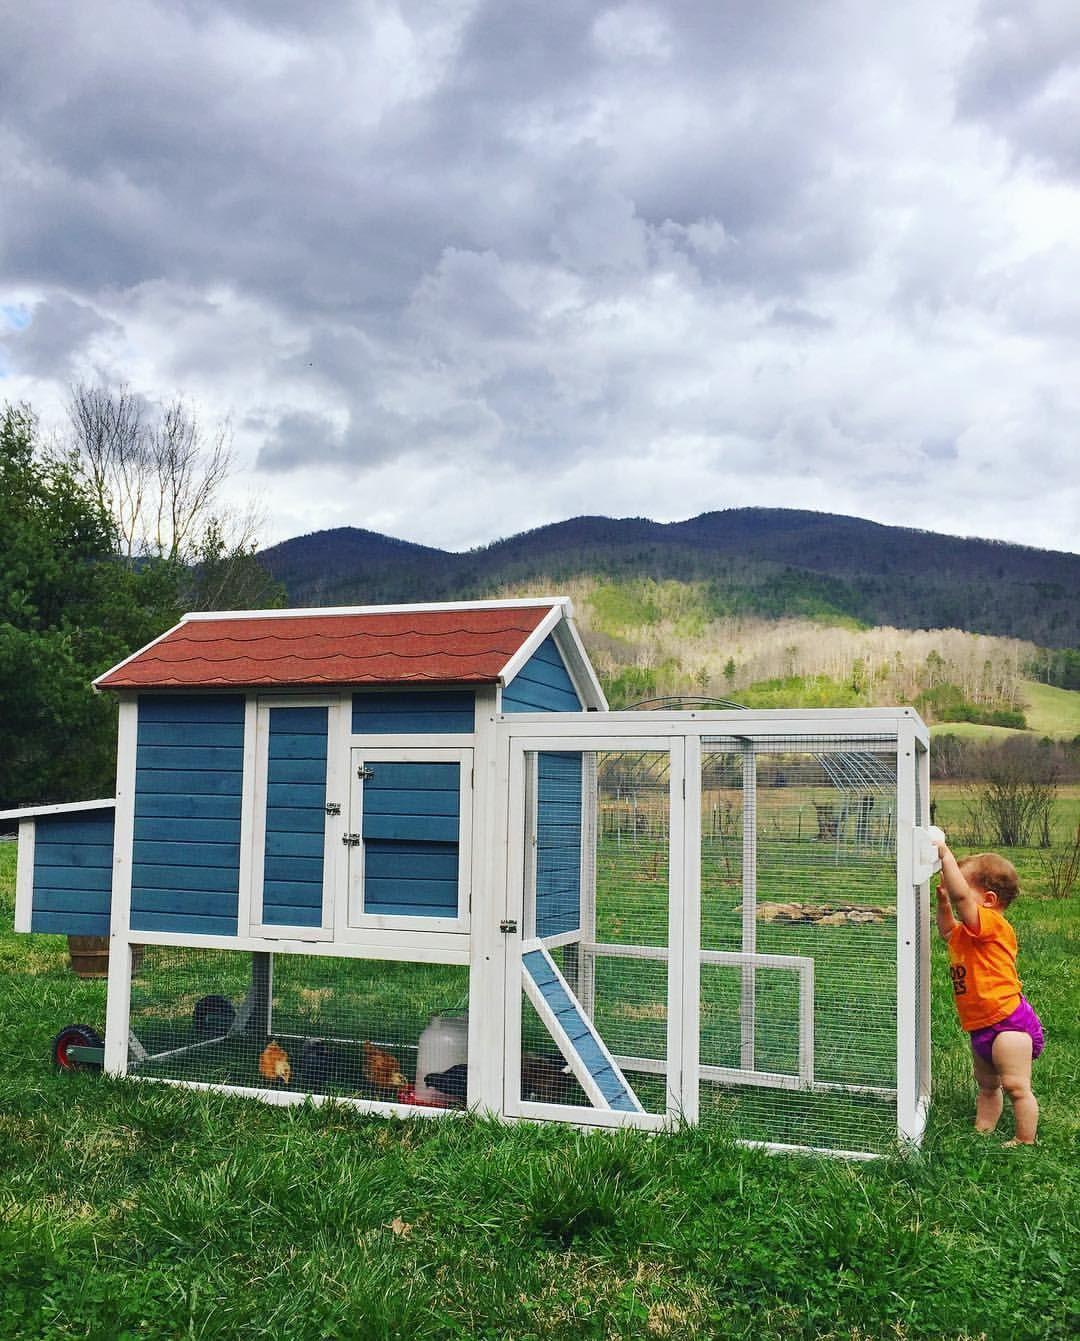 """✨Beryl ✨Kenny ✨Everett ✨Stella on Instagram: """"We're all loving our new mobile chicken coop from @tractorsupply  The chicks immediately started eating grass and looking for worms!  #backyardchickens"""""""